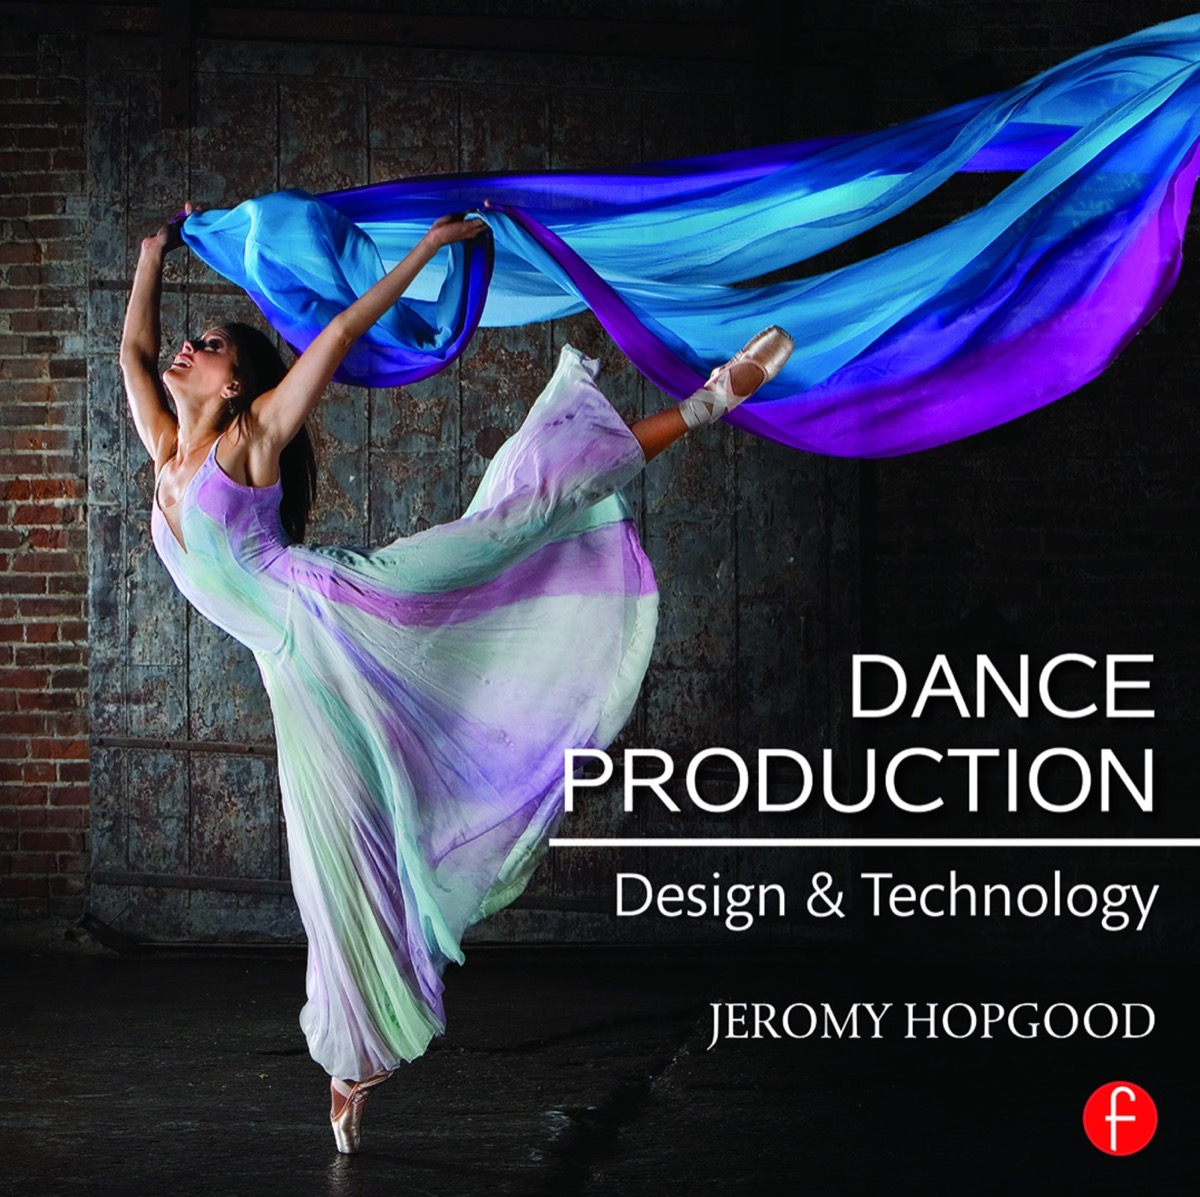 The new book from Jeromy Hopgood, Dance Production: Design & Technology